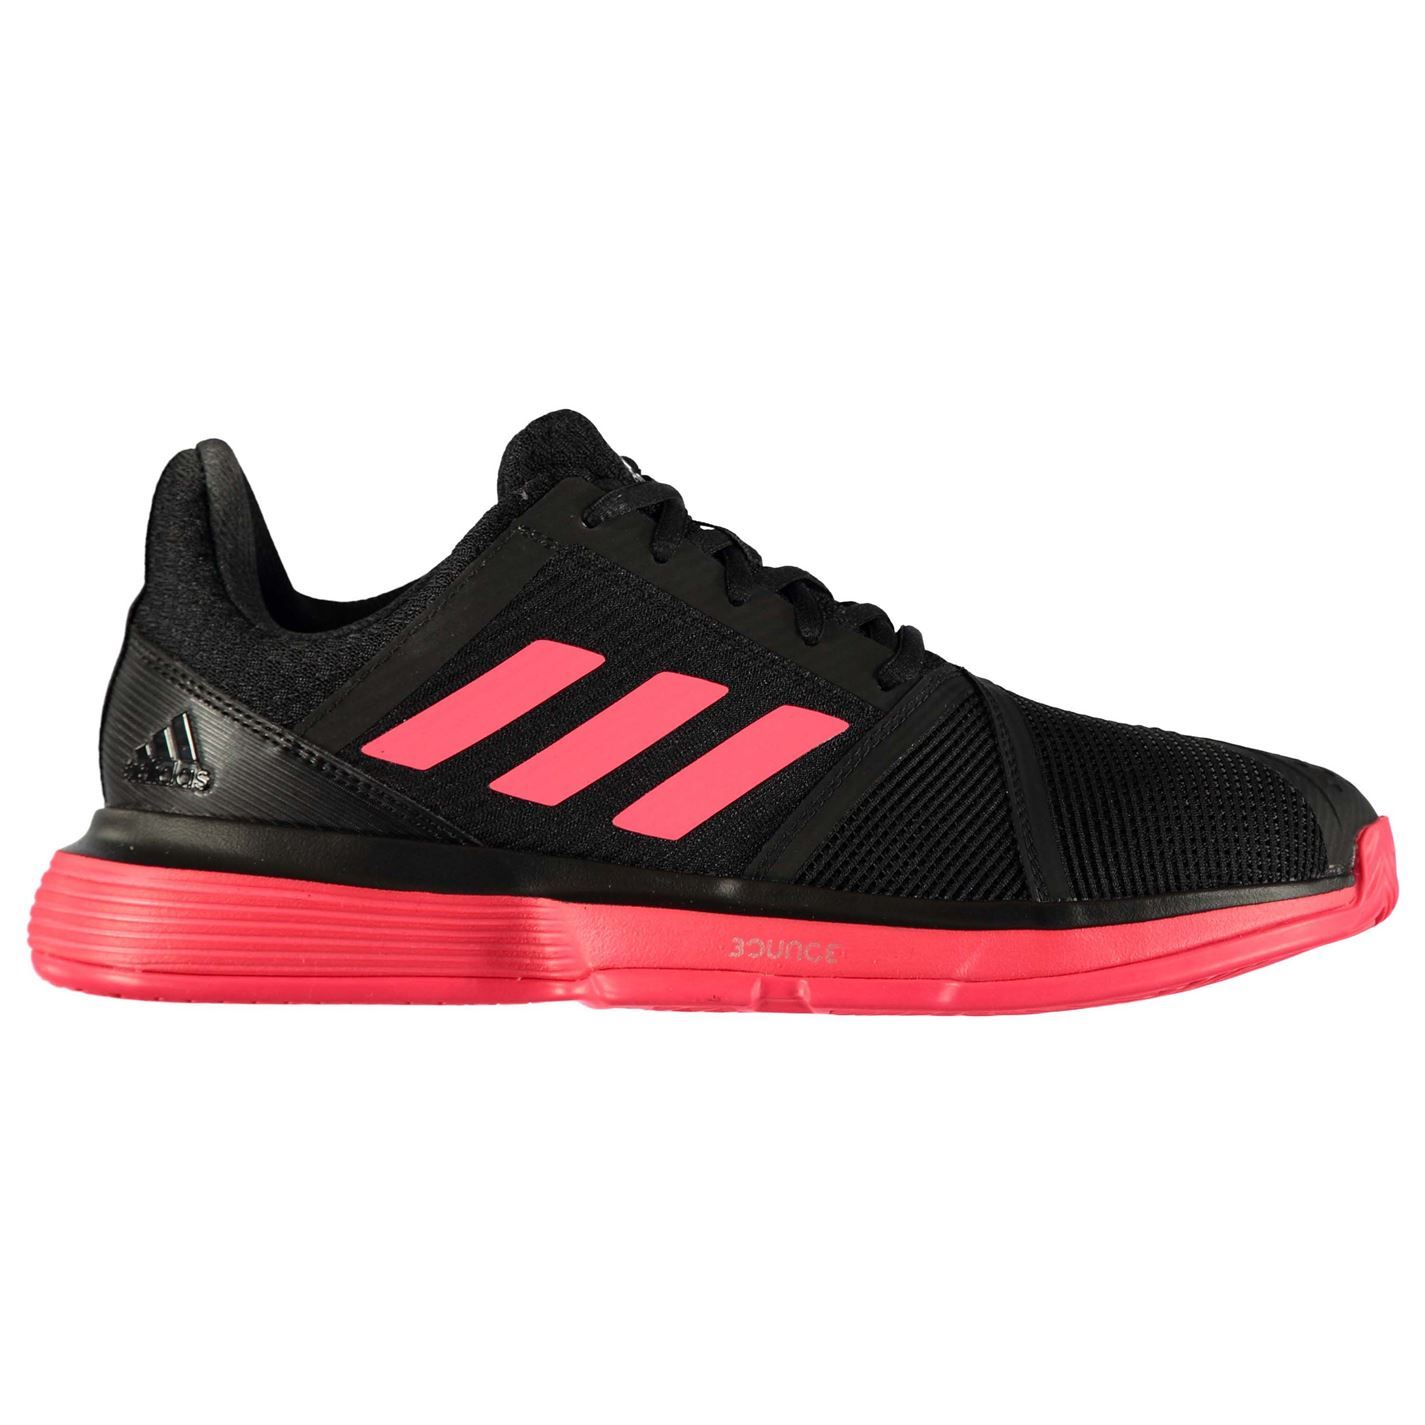 adidas Men's CourtJam Bounce Tennis Shoes | DICK'S Sporting